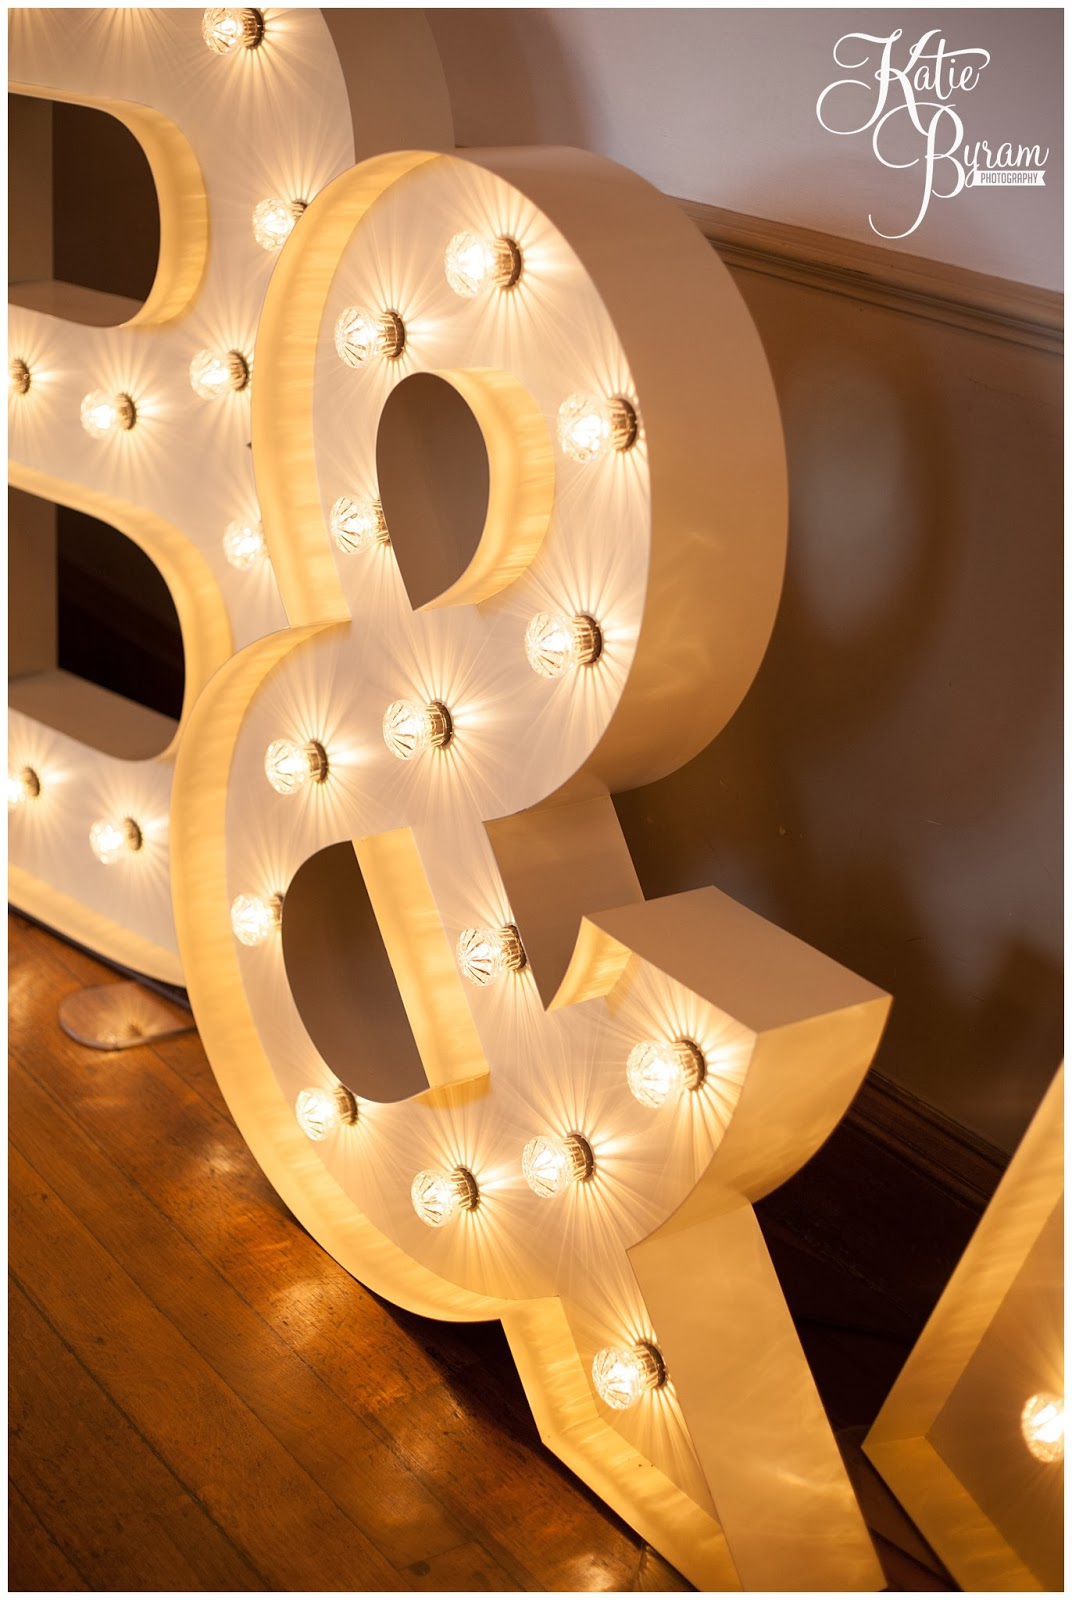 light up letters, kirkley hall wedding fair, kirkley hall wedding, kirkley hall wedding showcase, katie byram photography, by wendy stationery, floral quarter, mark deeks music, northumberland wedding venue,